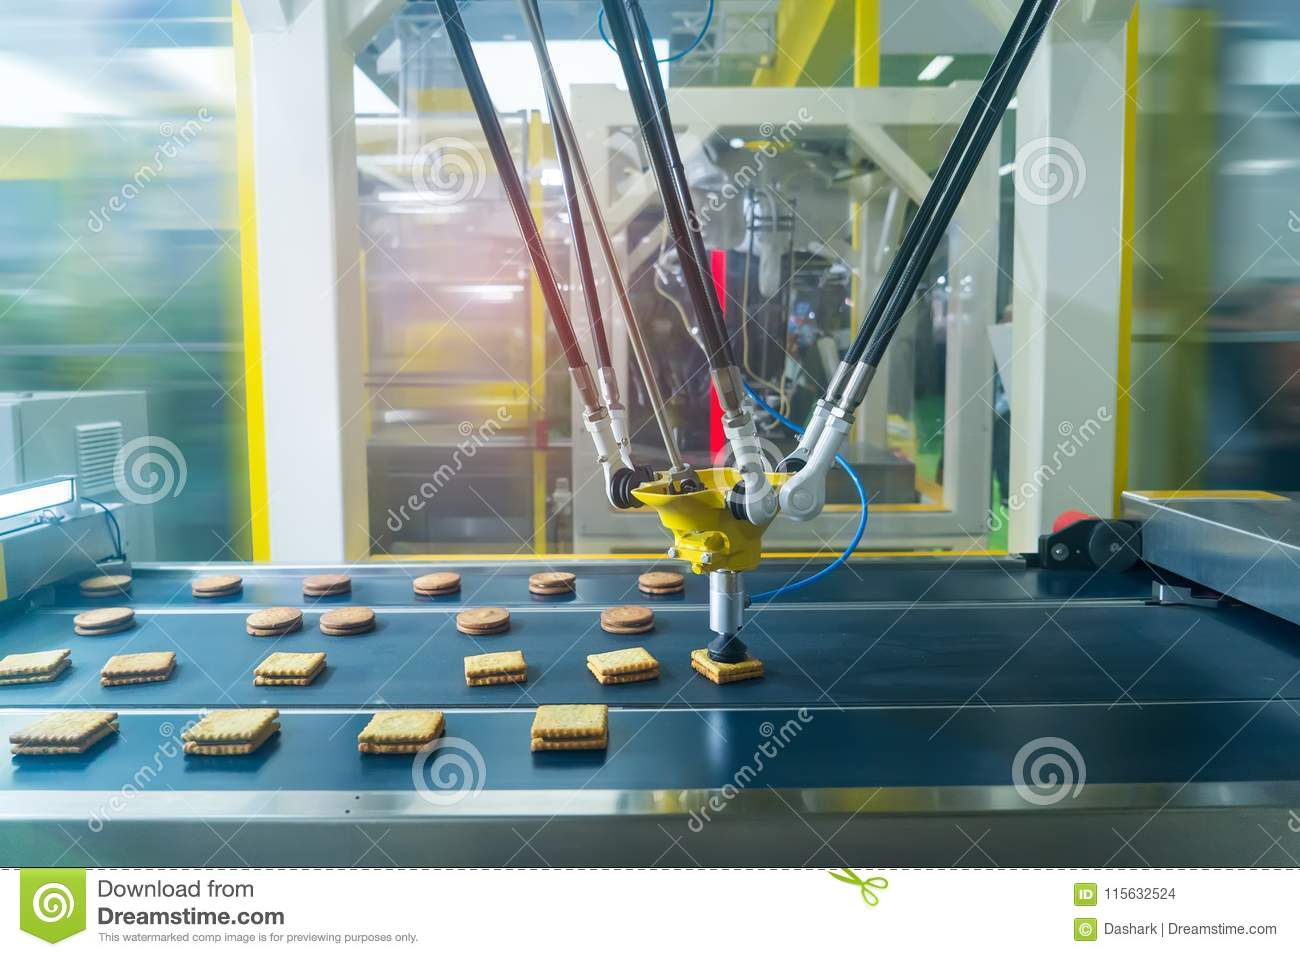 robot with vacuum suckers with conveyor in Production of cookies